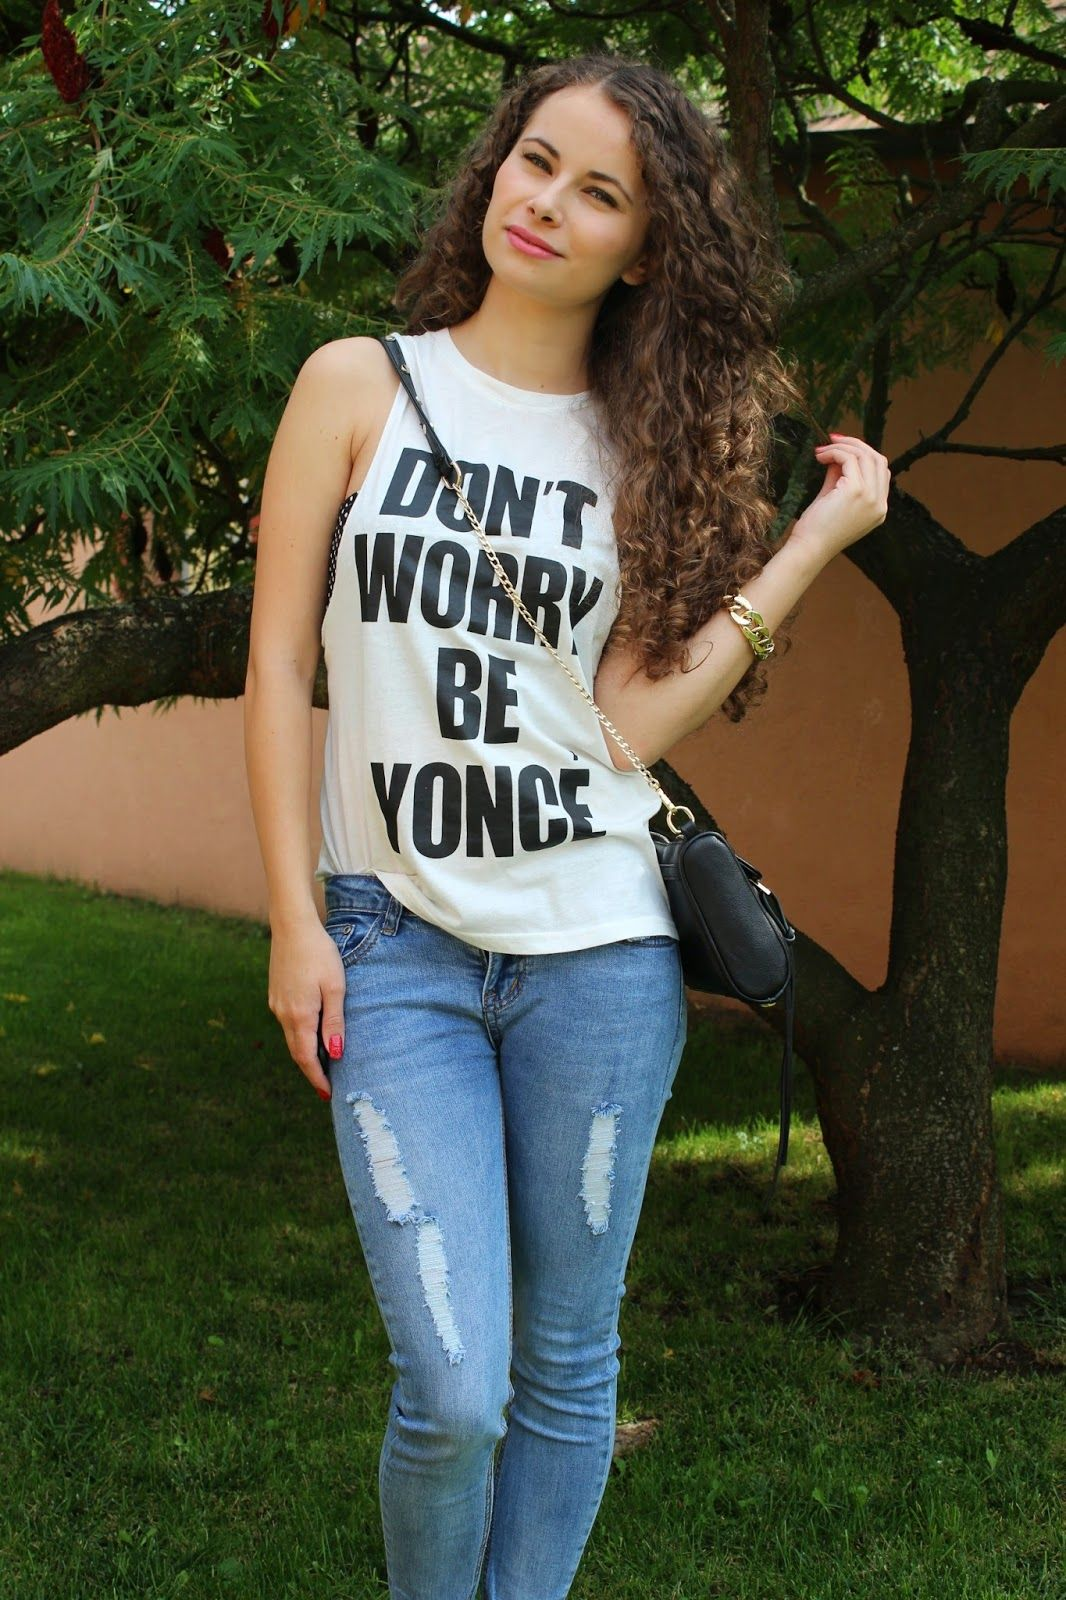 Breakfast at Fruh: OOTD - Don't worry, be yoncé !